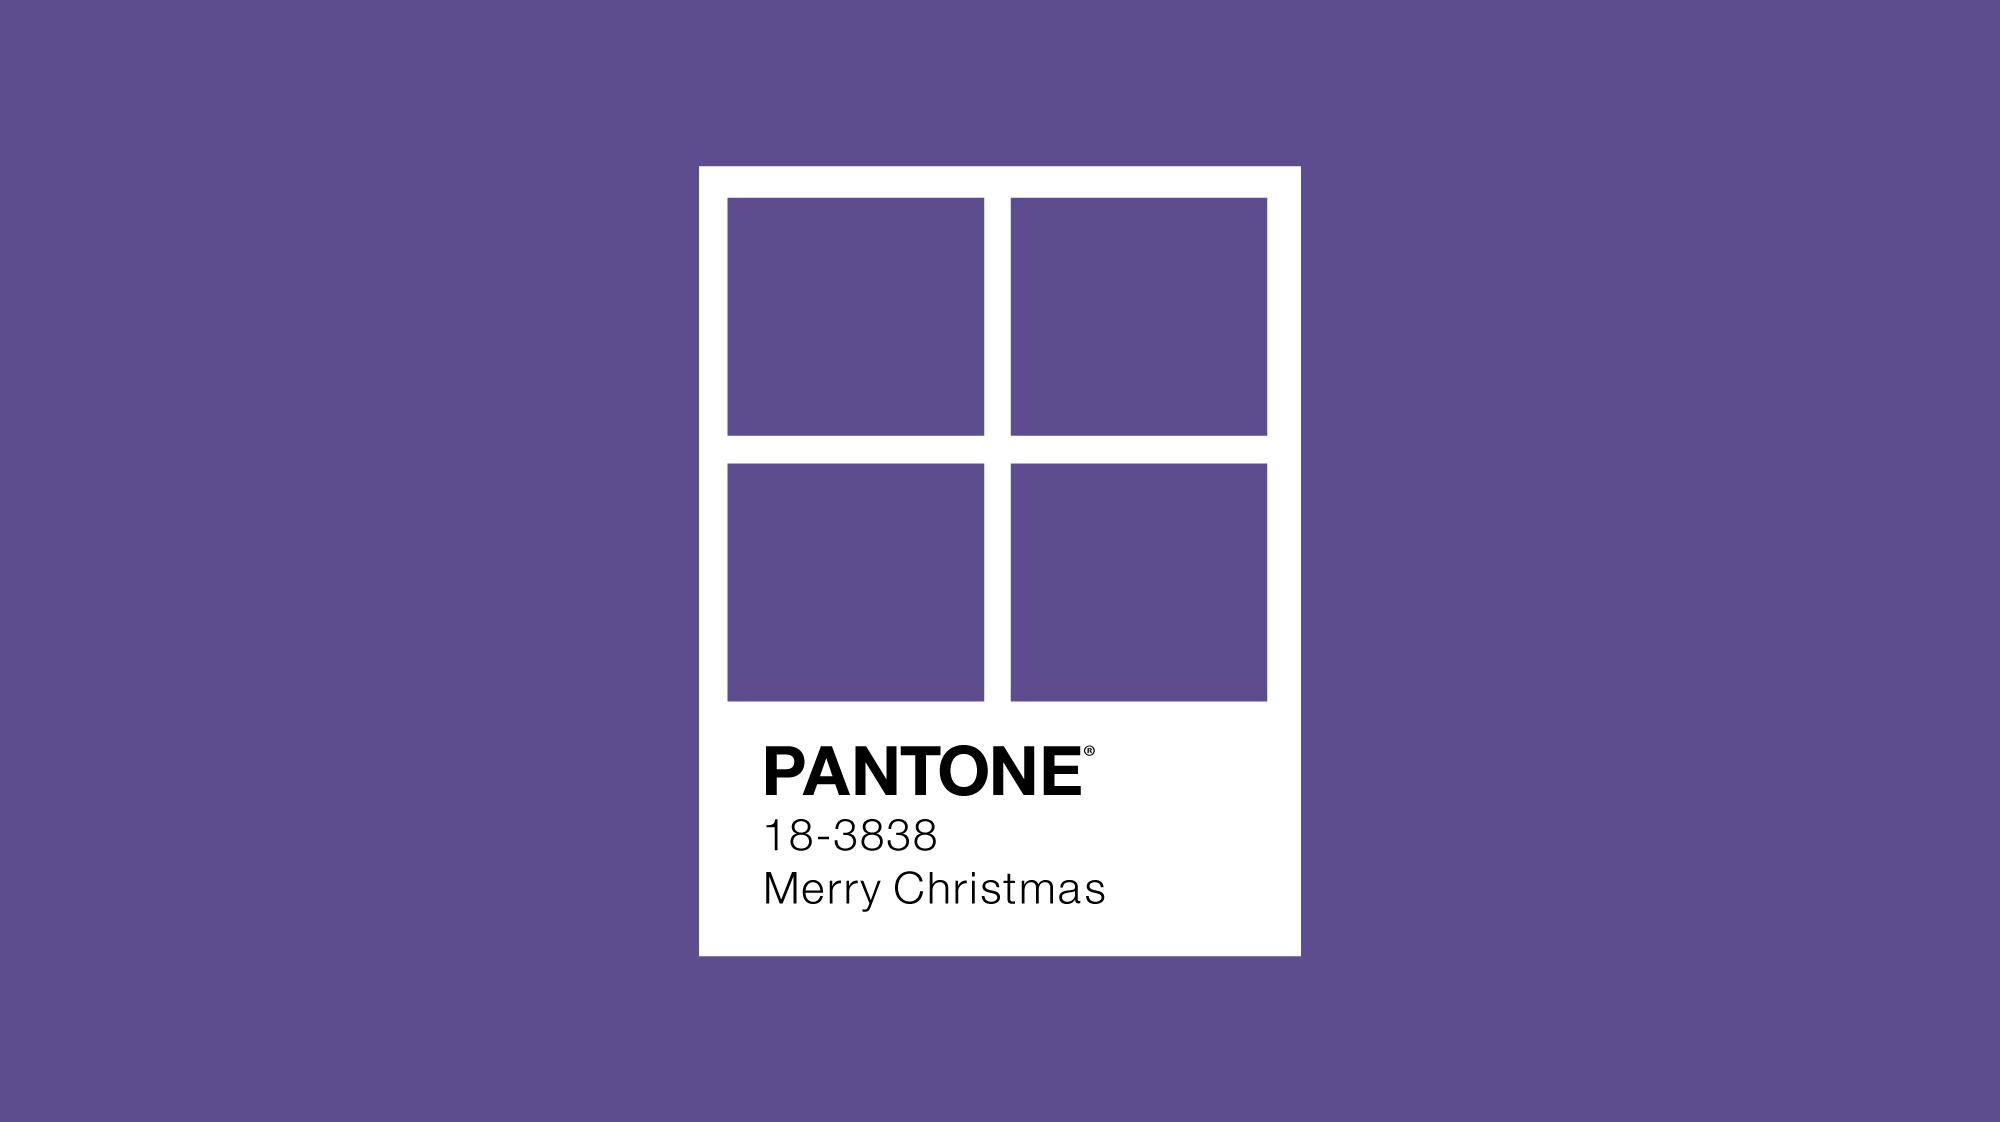 Pantone colour of the year 2018 minimal design with window frame